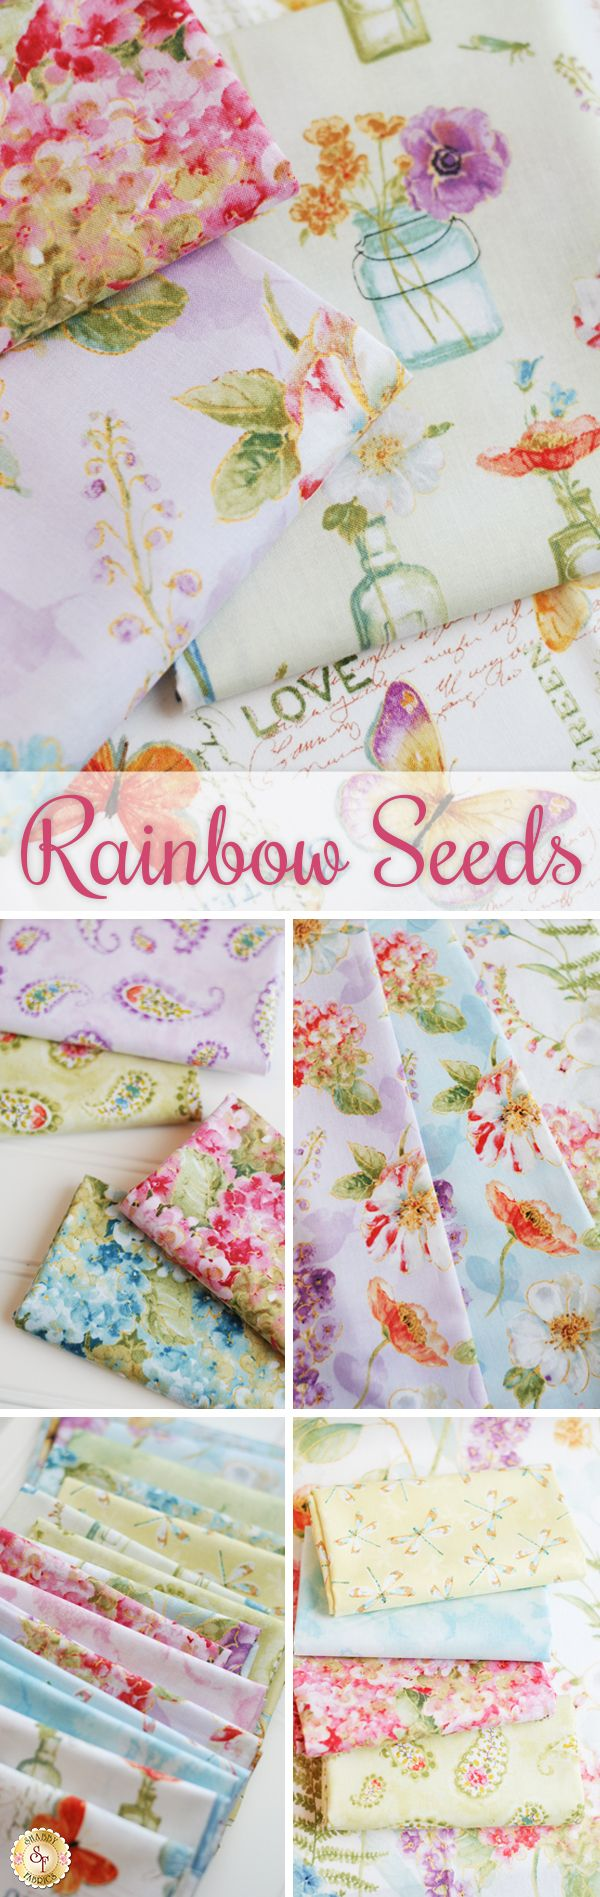 Rainbow Seeds by Lisa Audit for Wilmington Prints is a beautiful floral fabric collection available at Shabby Fabrics!